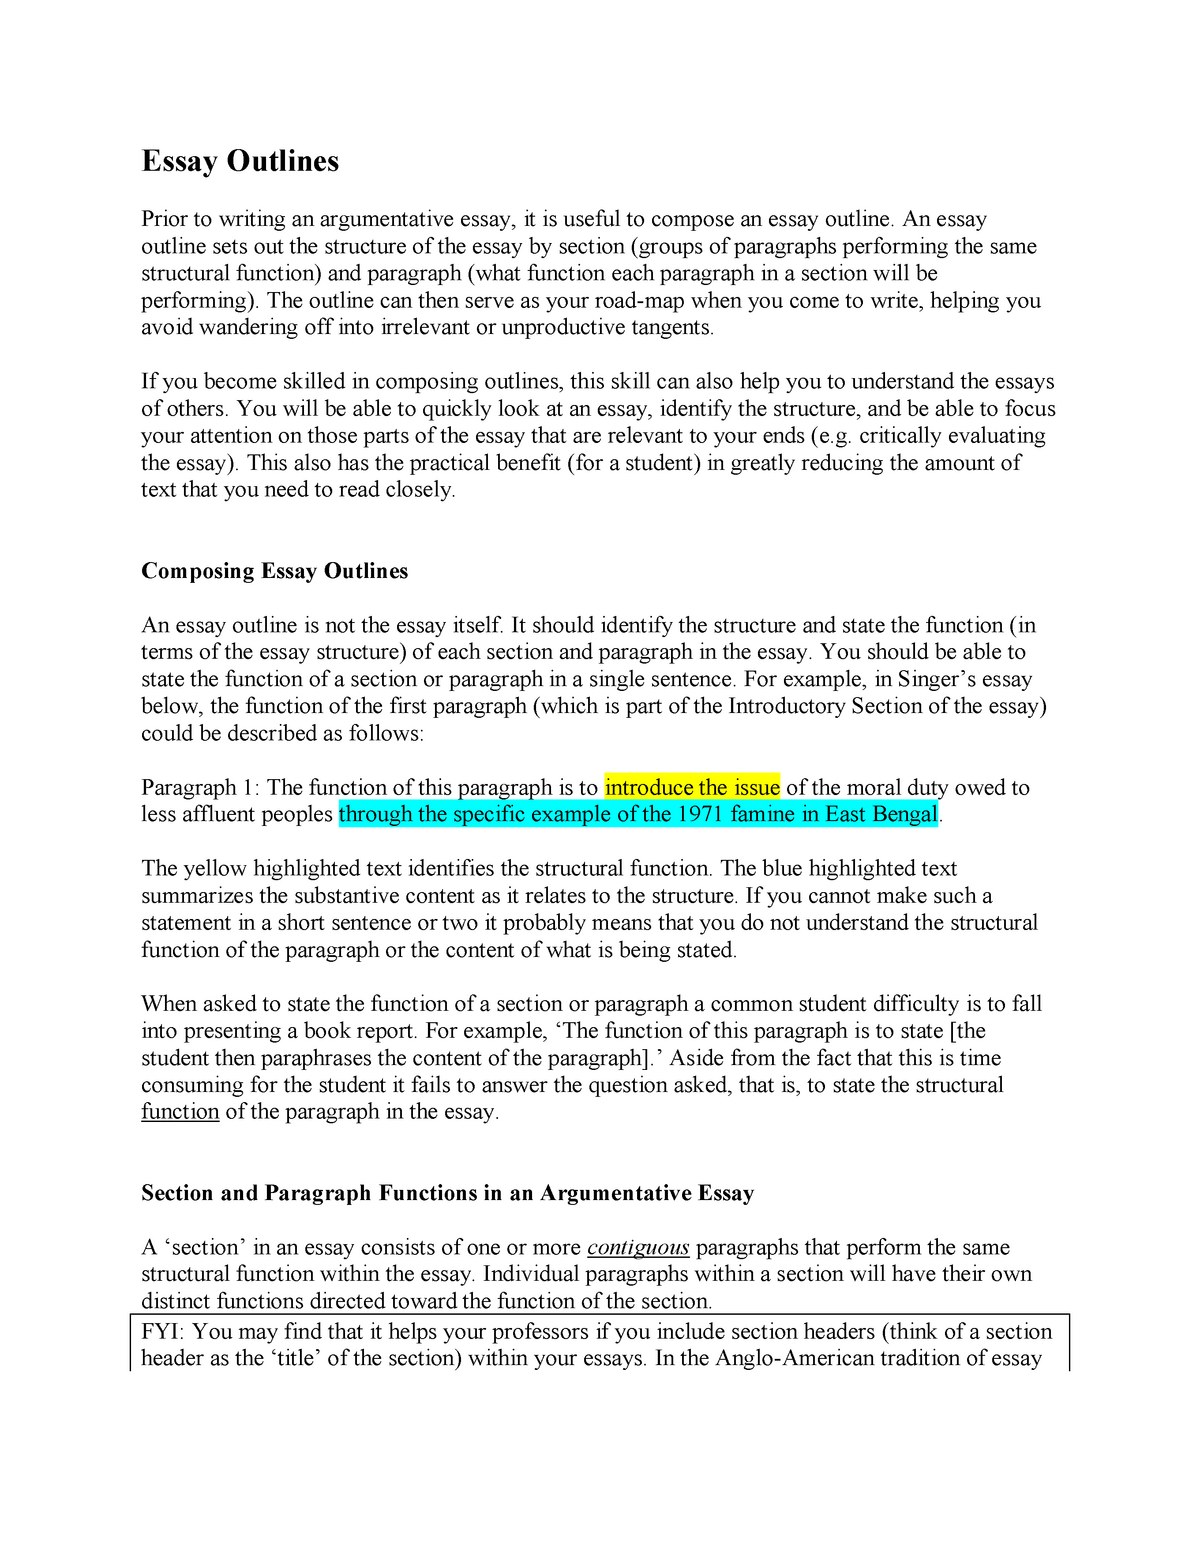 Essay Examples High School  How To Write An Essay For High School also High School Persuasive Essay Essay Handout Excerpt From Singer Famine Affluence And  Short English Essays For Students